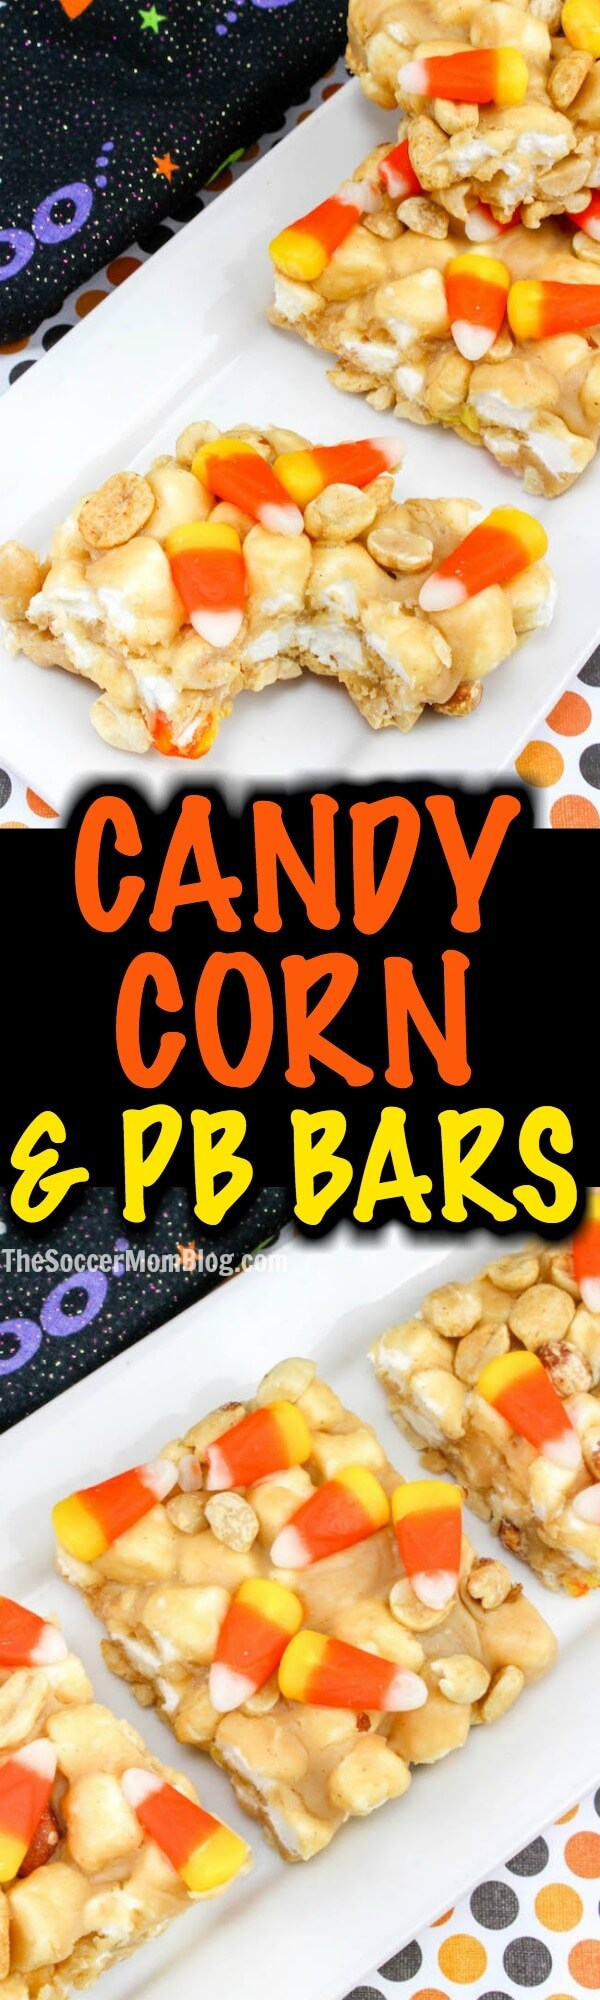 These Crunchy Peanut Butter & Candy Corn Treatsare packed with pure awesomeness!! Crunchy, chewy, sweet, and salty (and they're gluten free!)